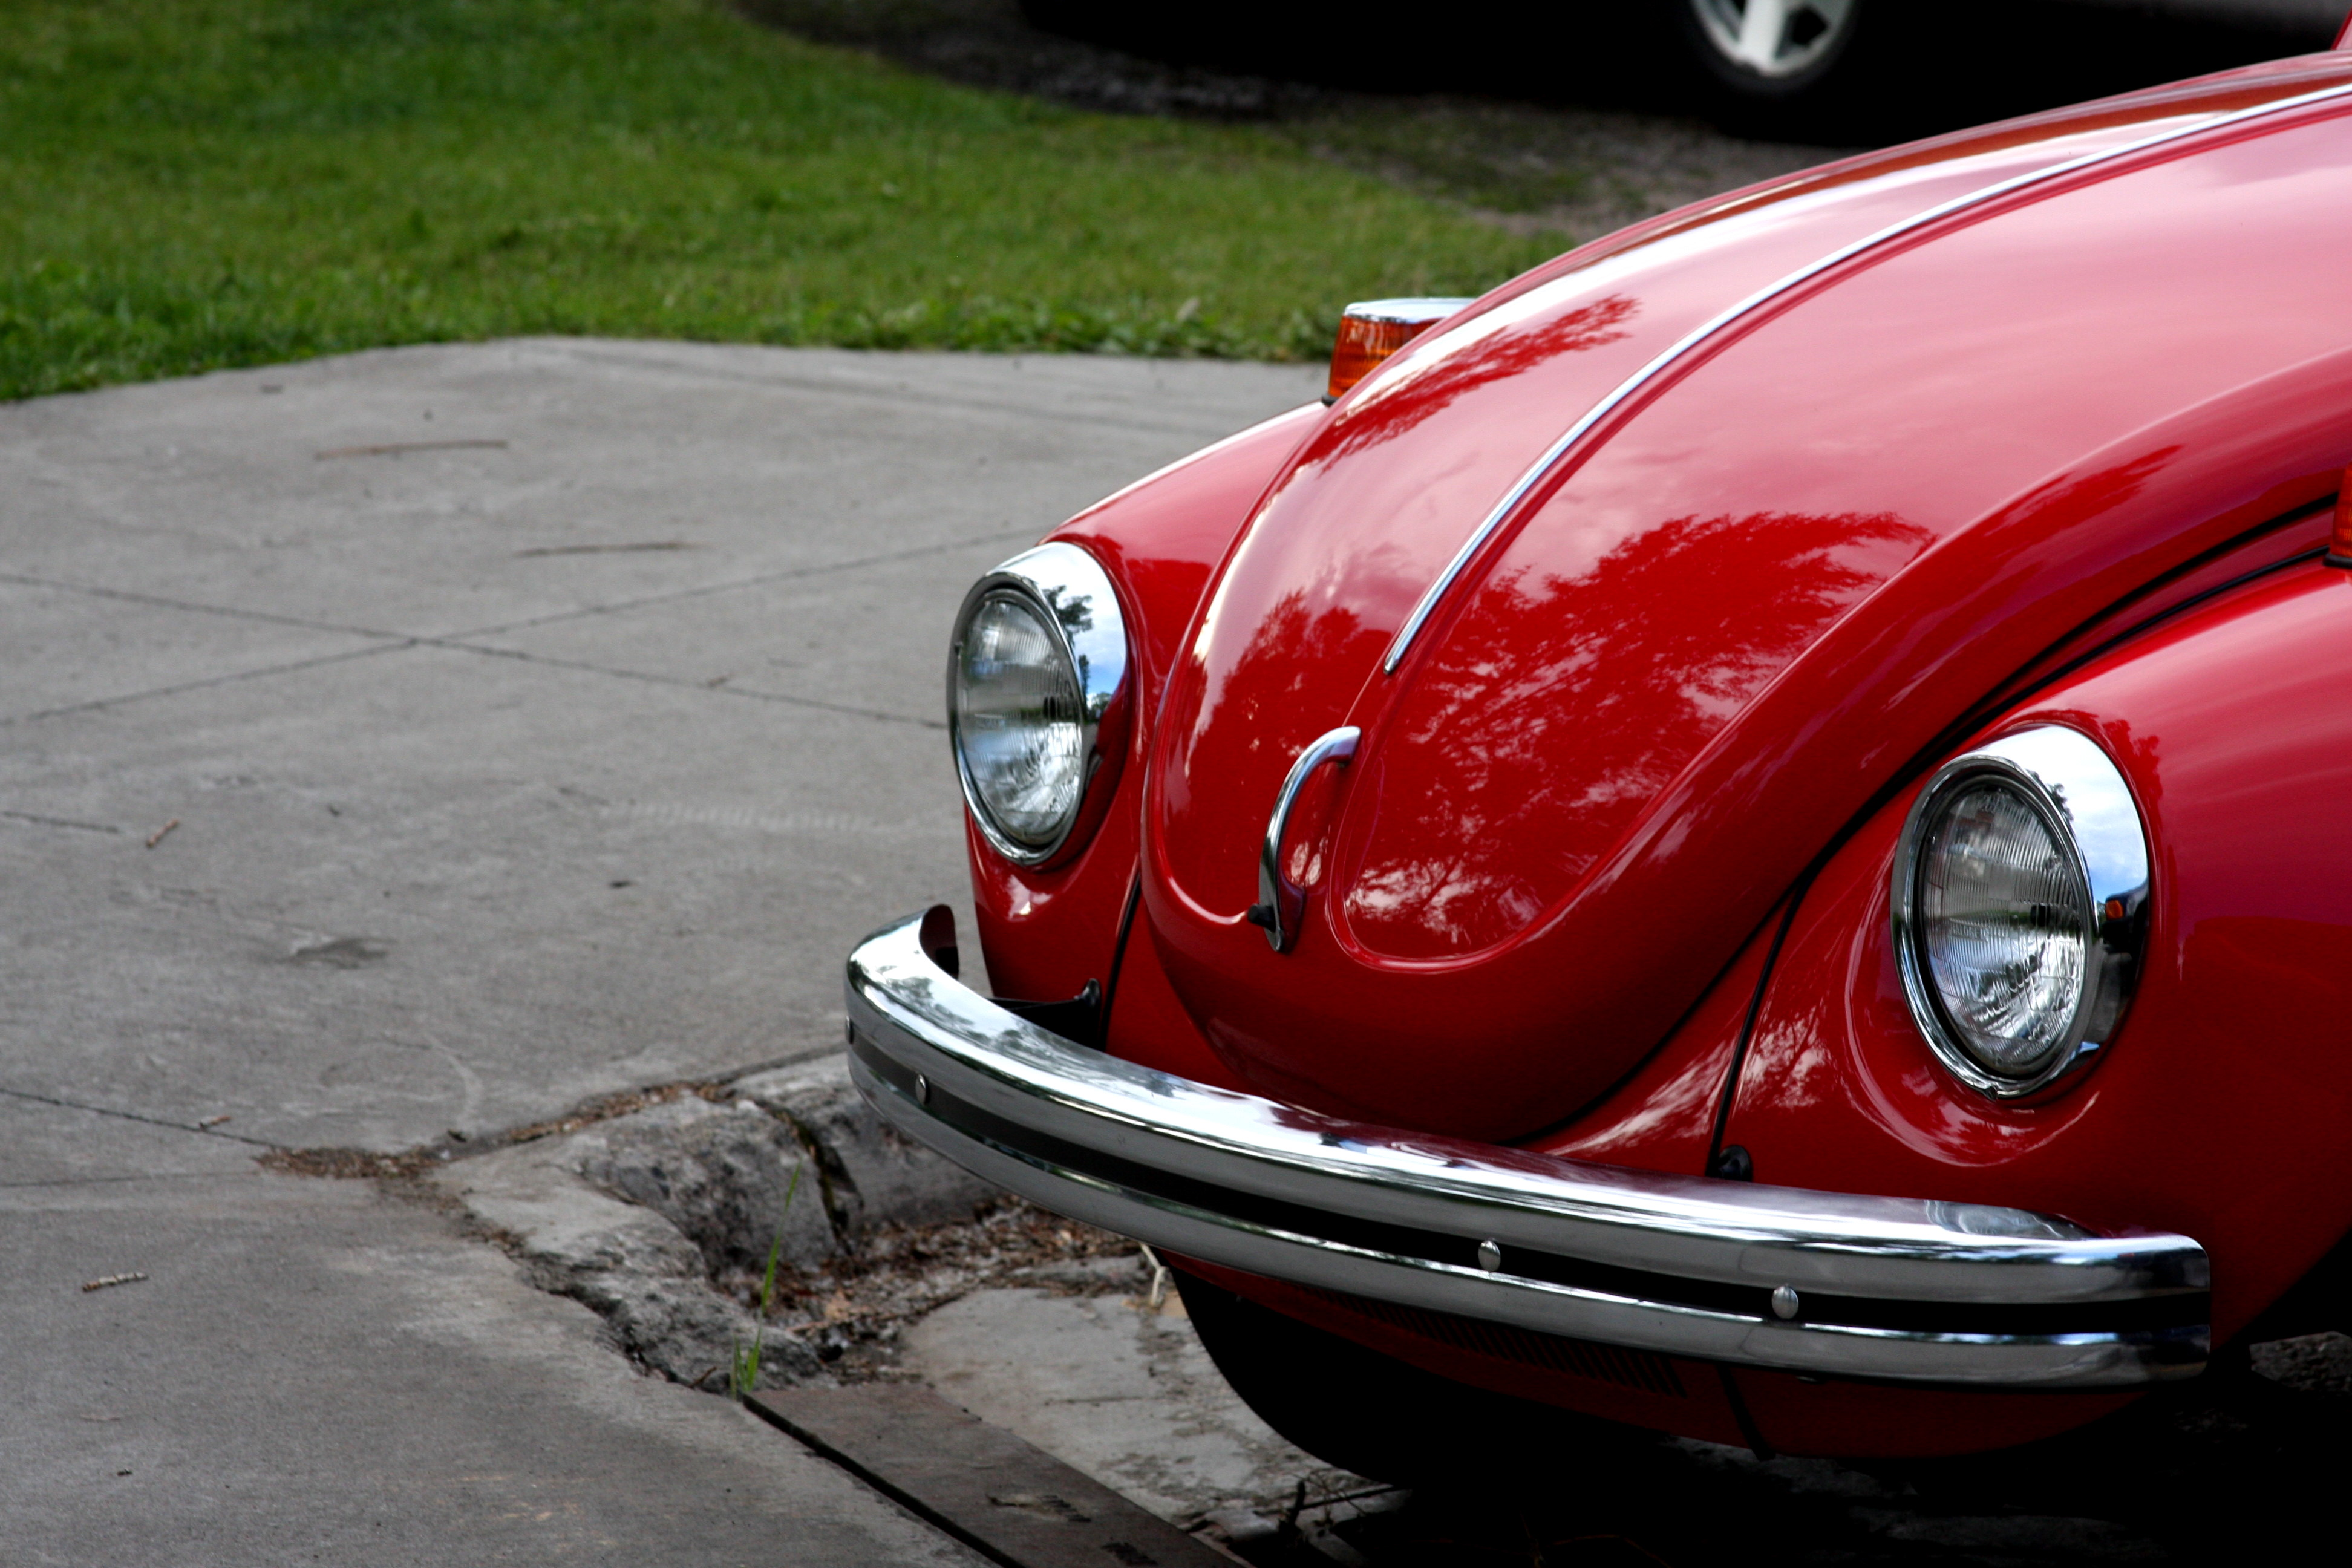 A beautiful red vintage VW,